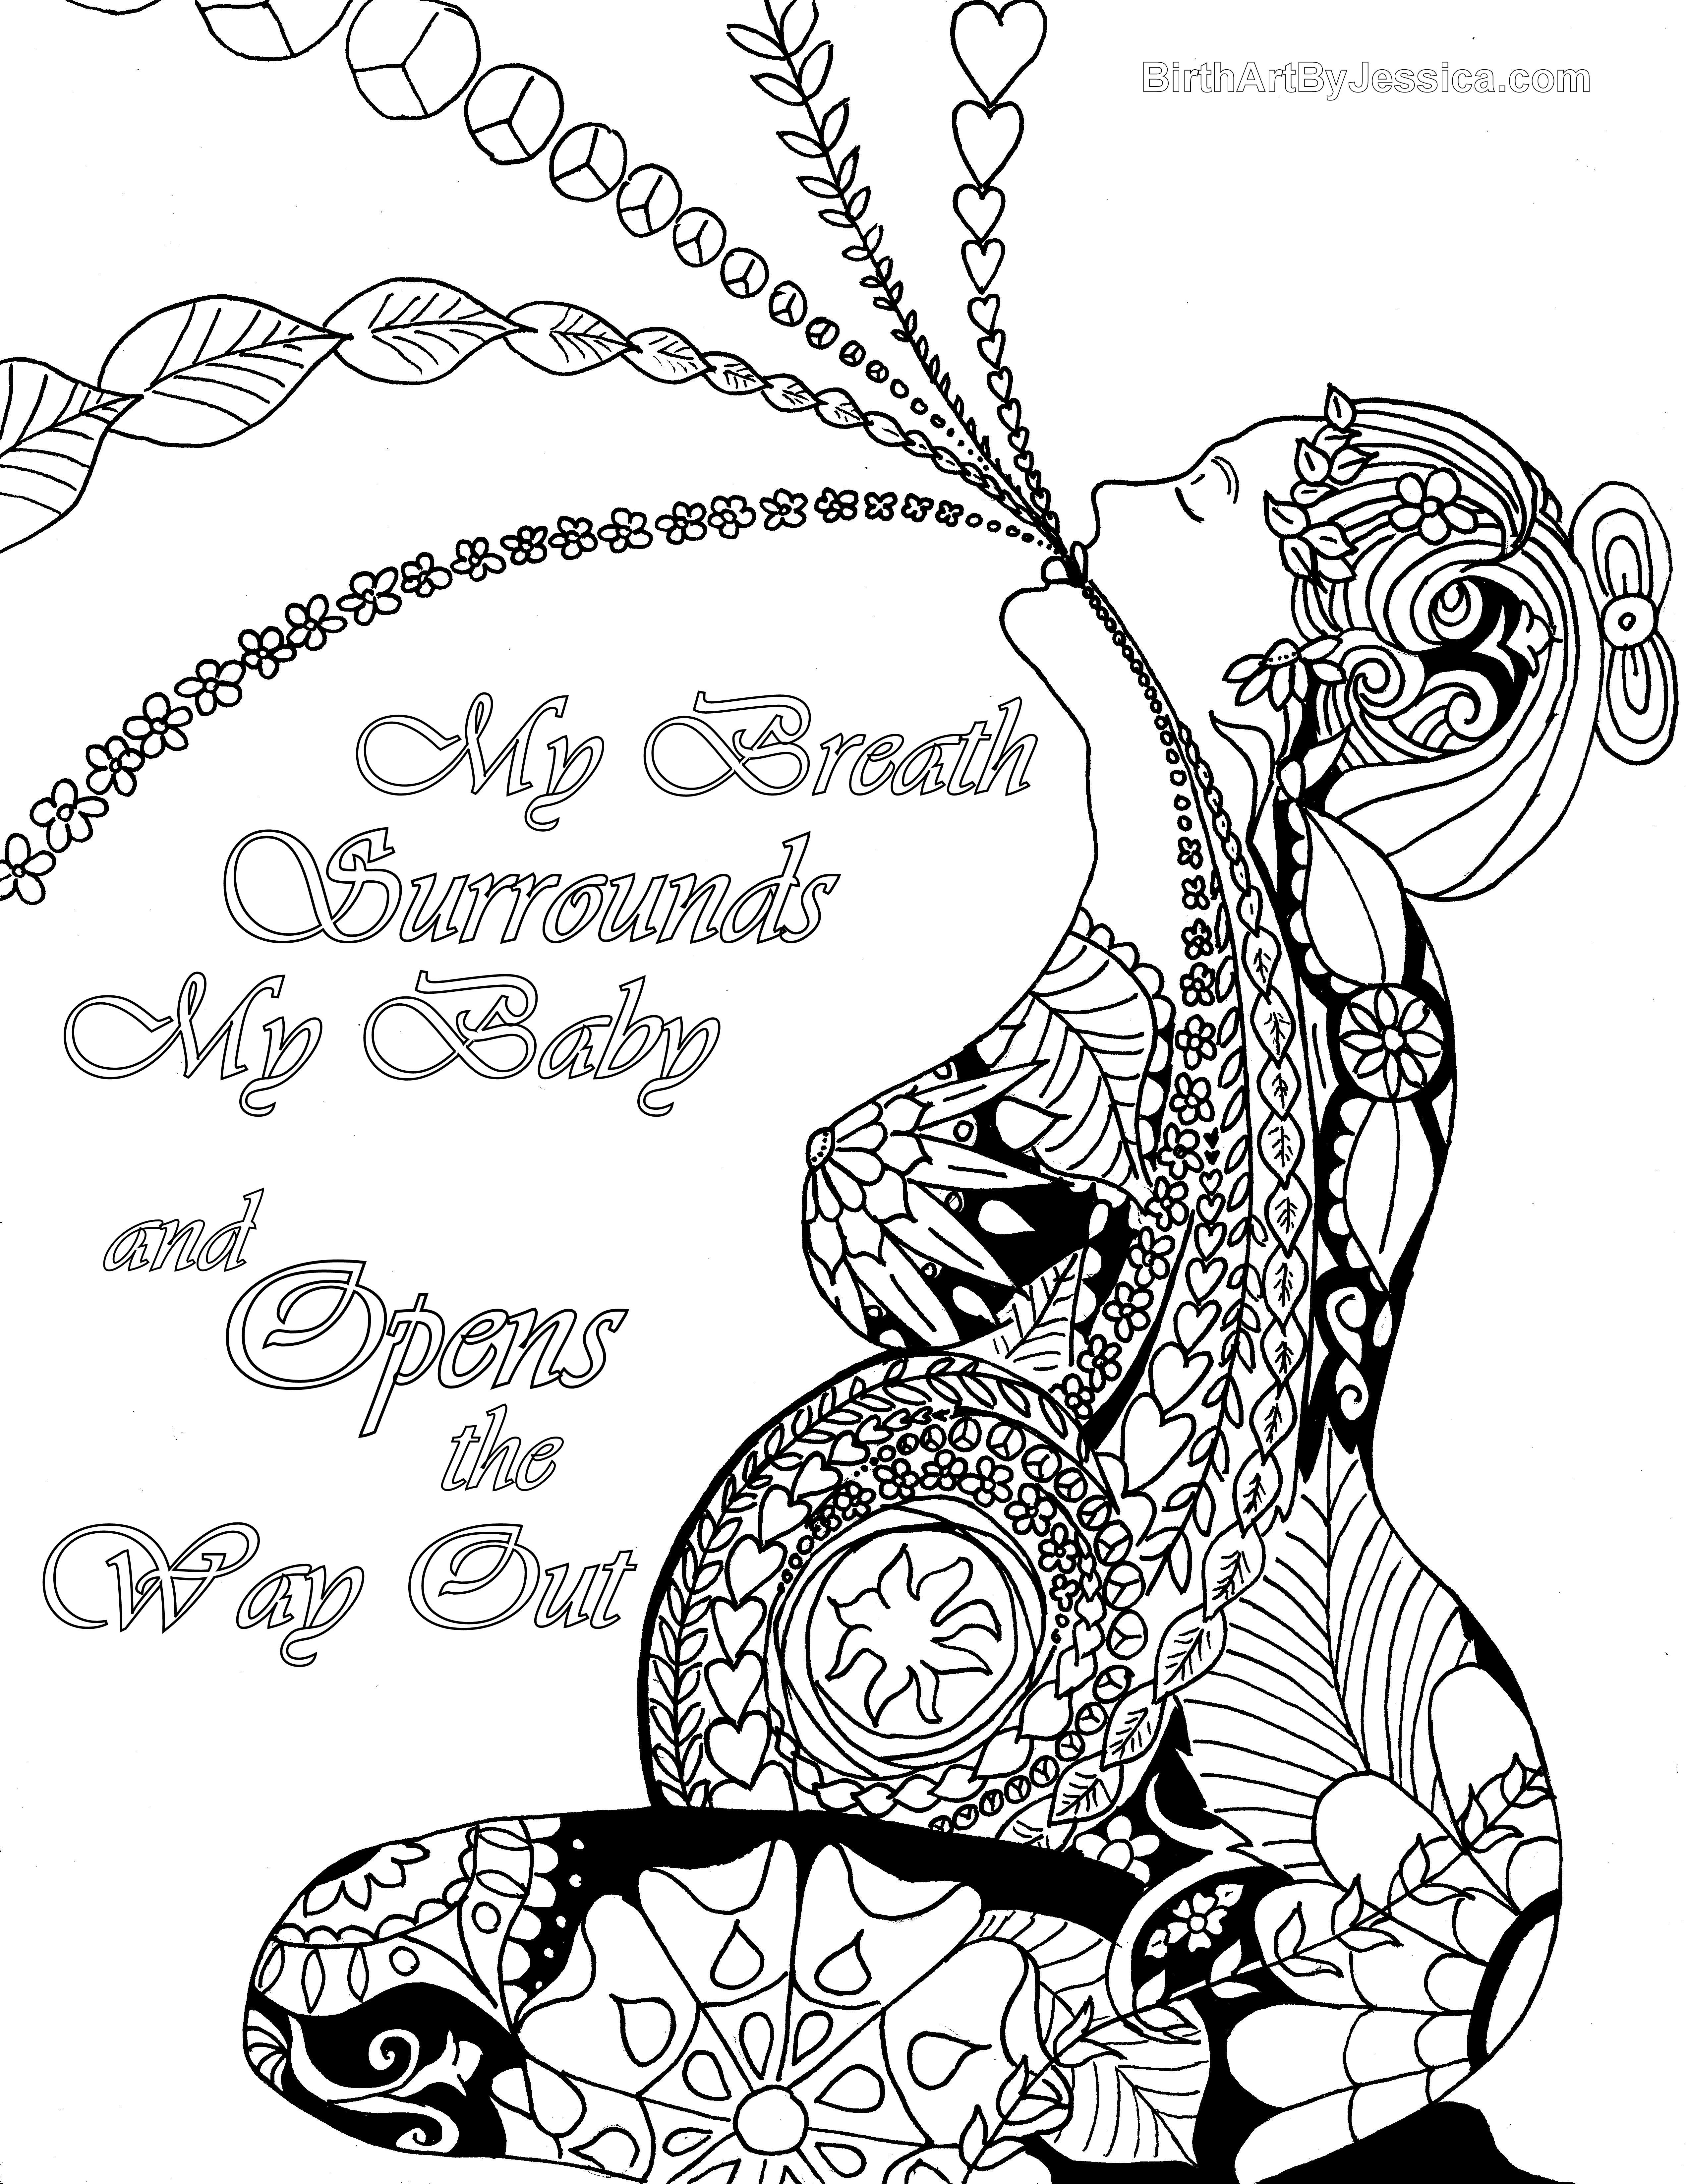 Birth Affirmation Coloring Page -Free Printable!- | Birth Pregnancy ...